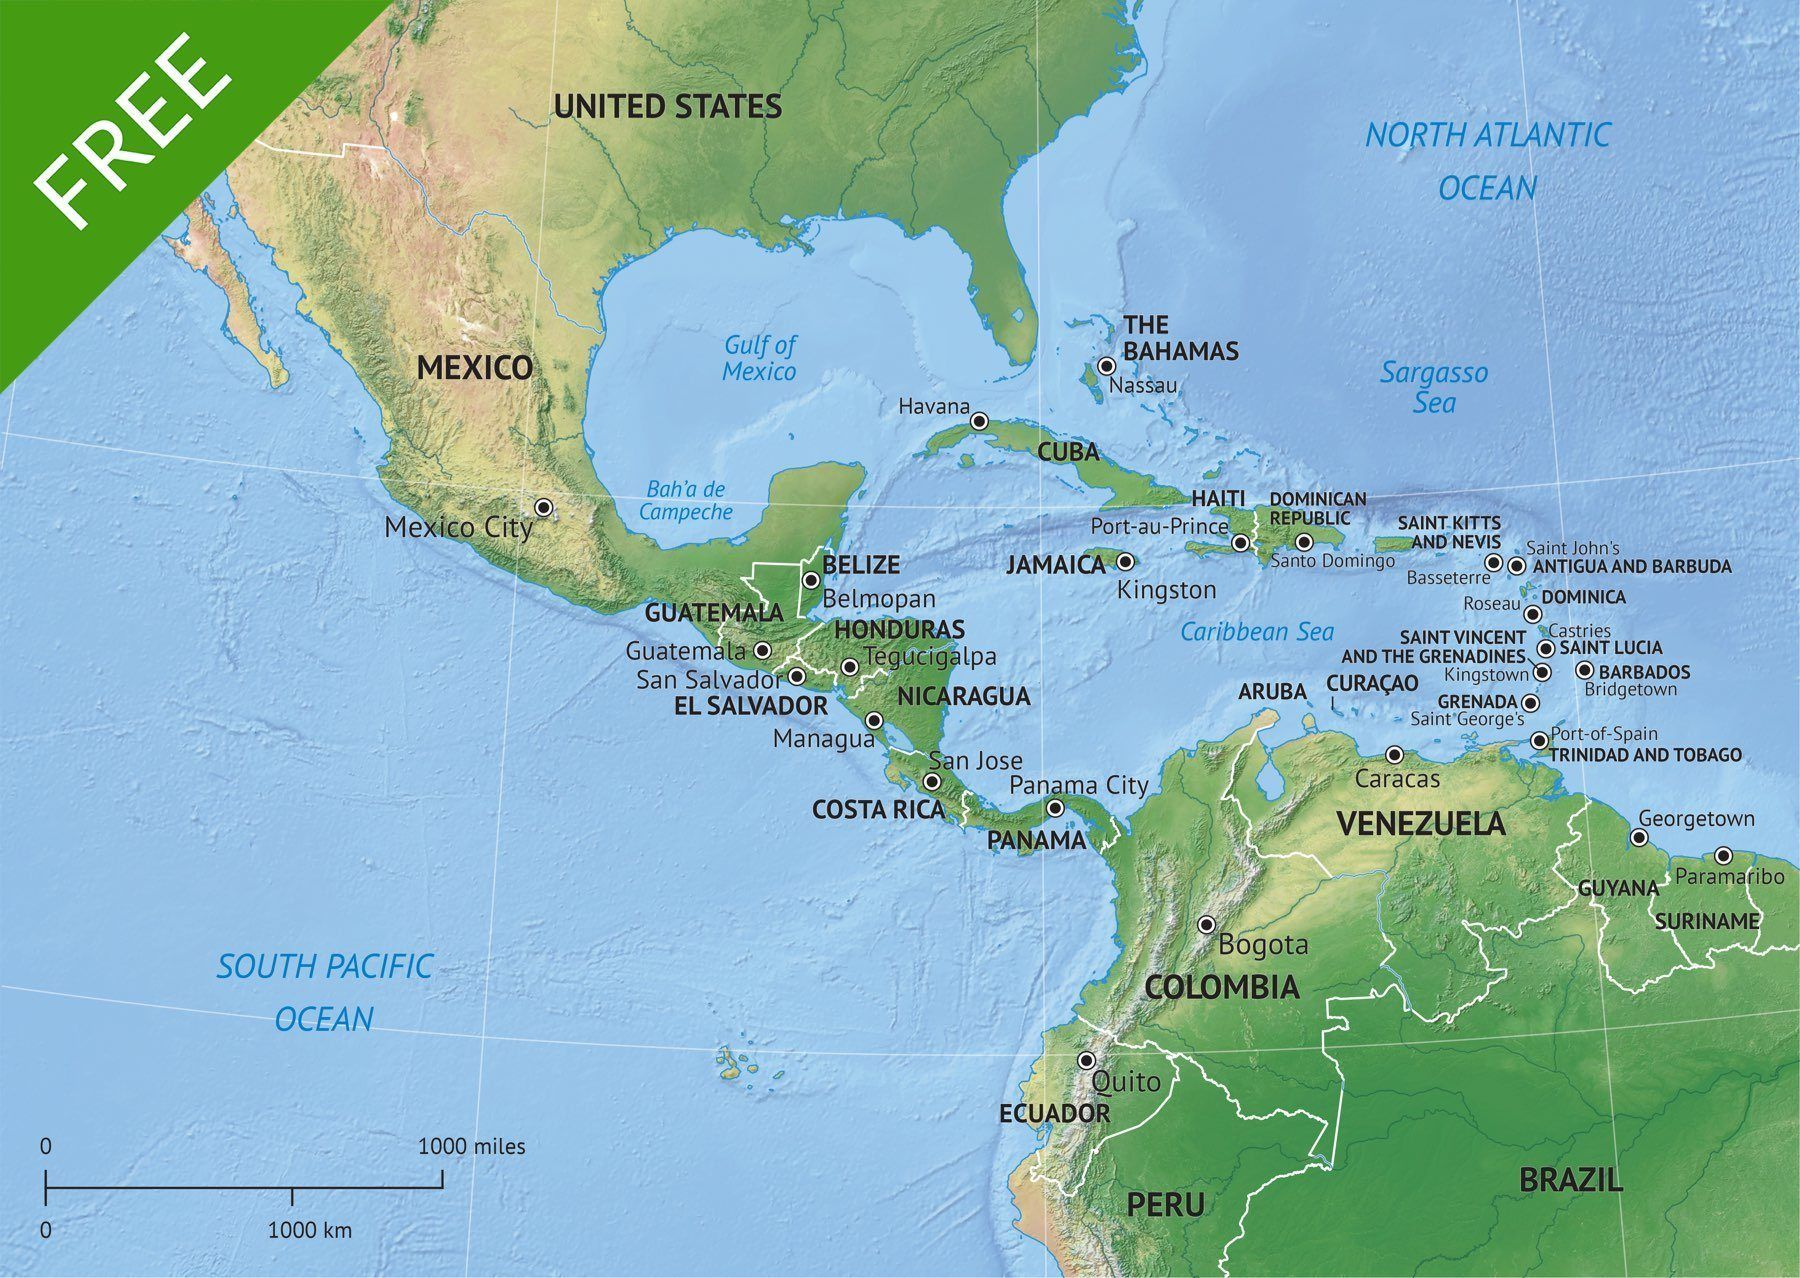 Free Vector Map MiddleCentral America Central America And Middle - World map blank illustrator